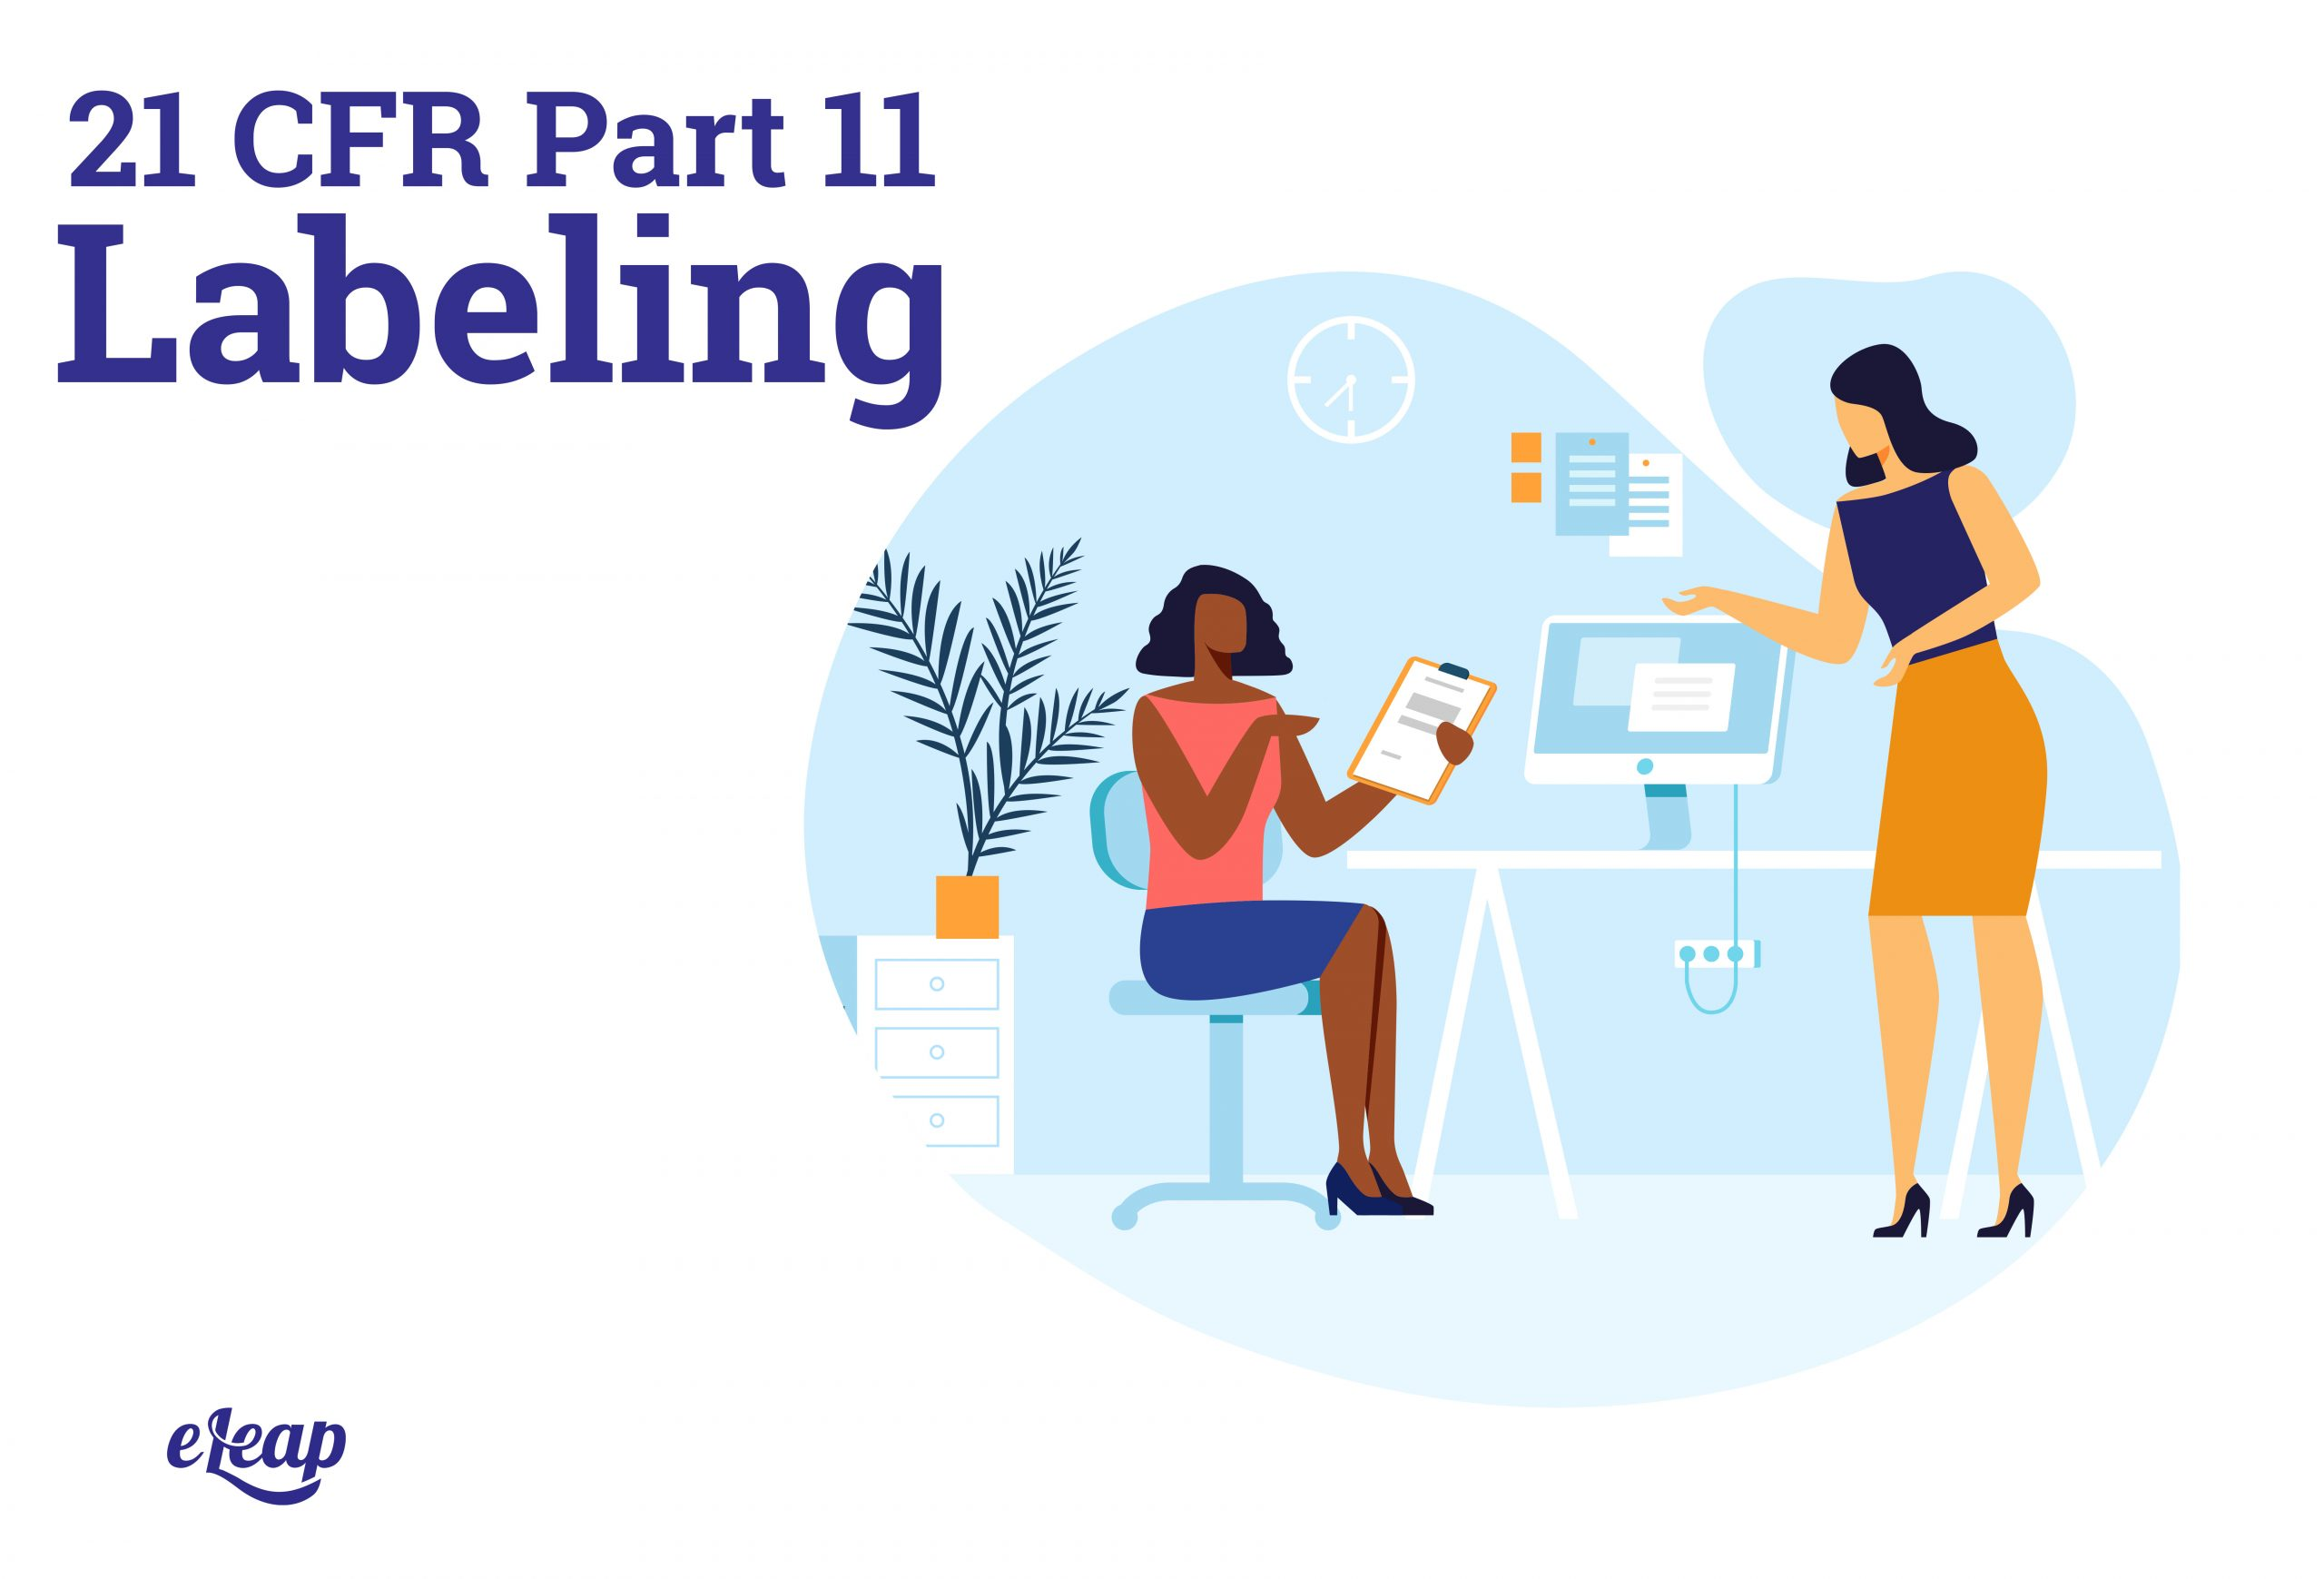 21 CFR Part 11 Labeling